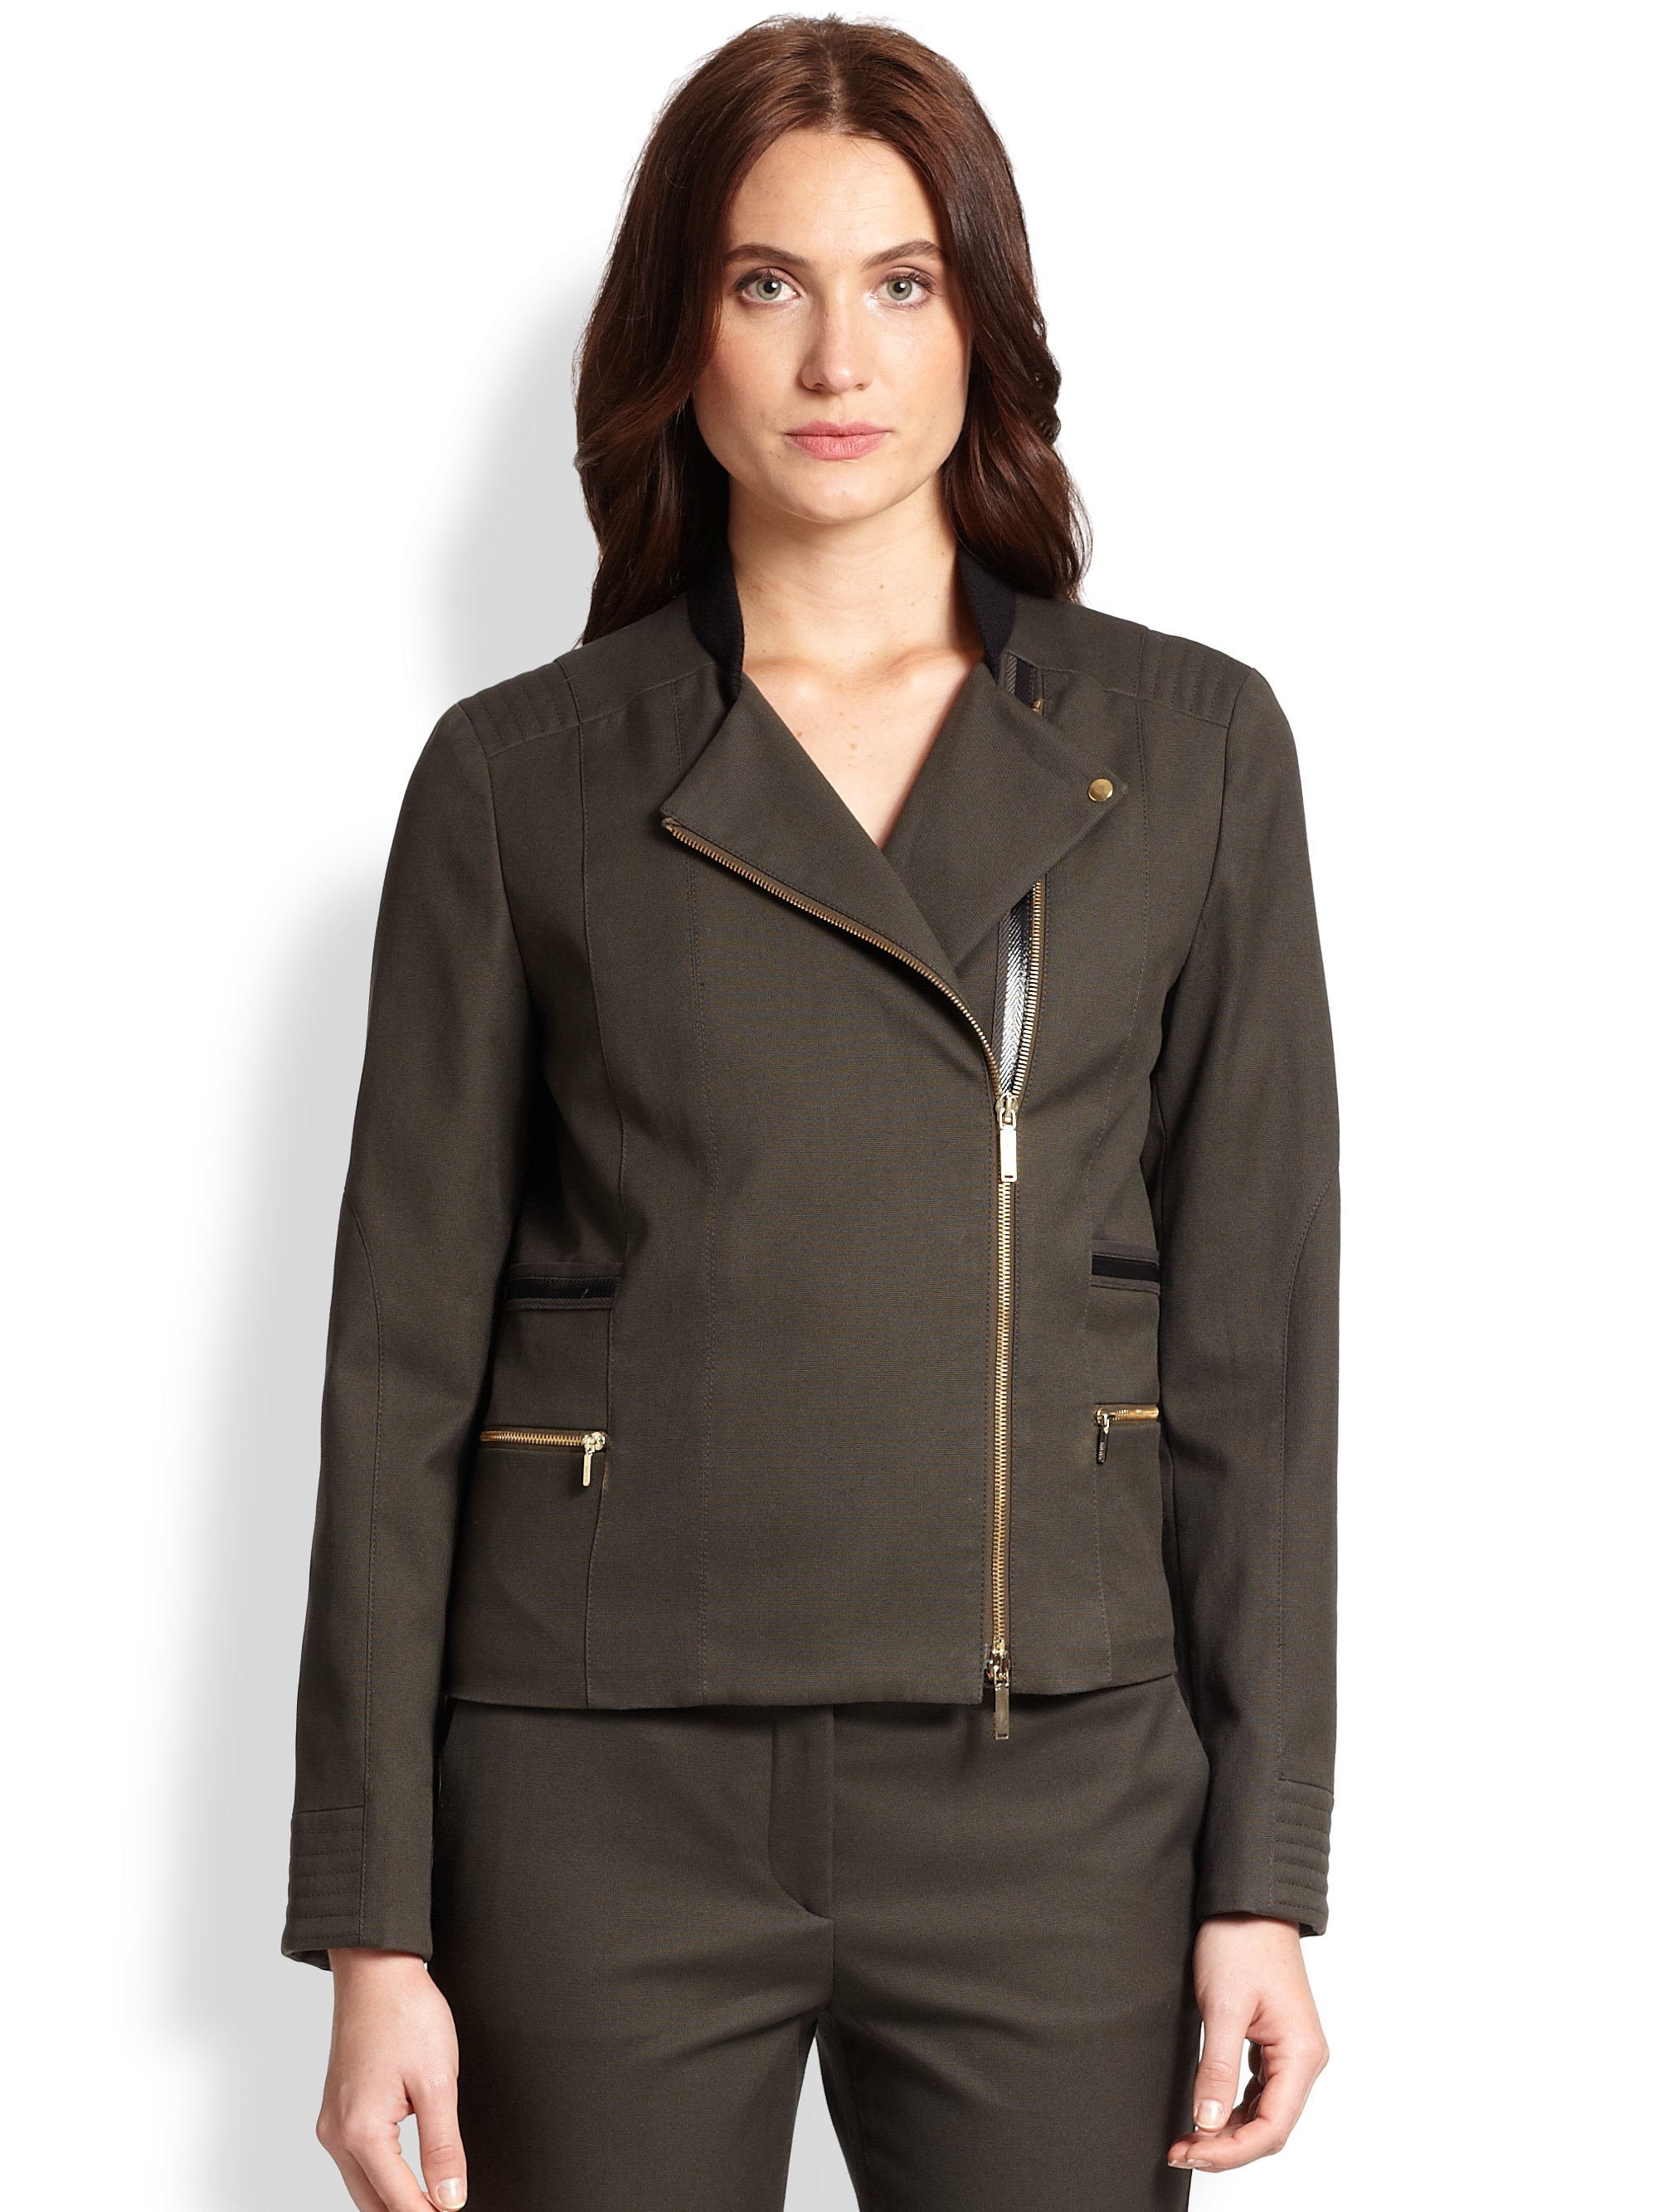 boss by hugo boss jifay jacket in green olive lyst. Black Bedroom Furniture Sets. Home Design Ideas